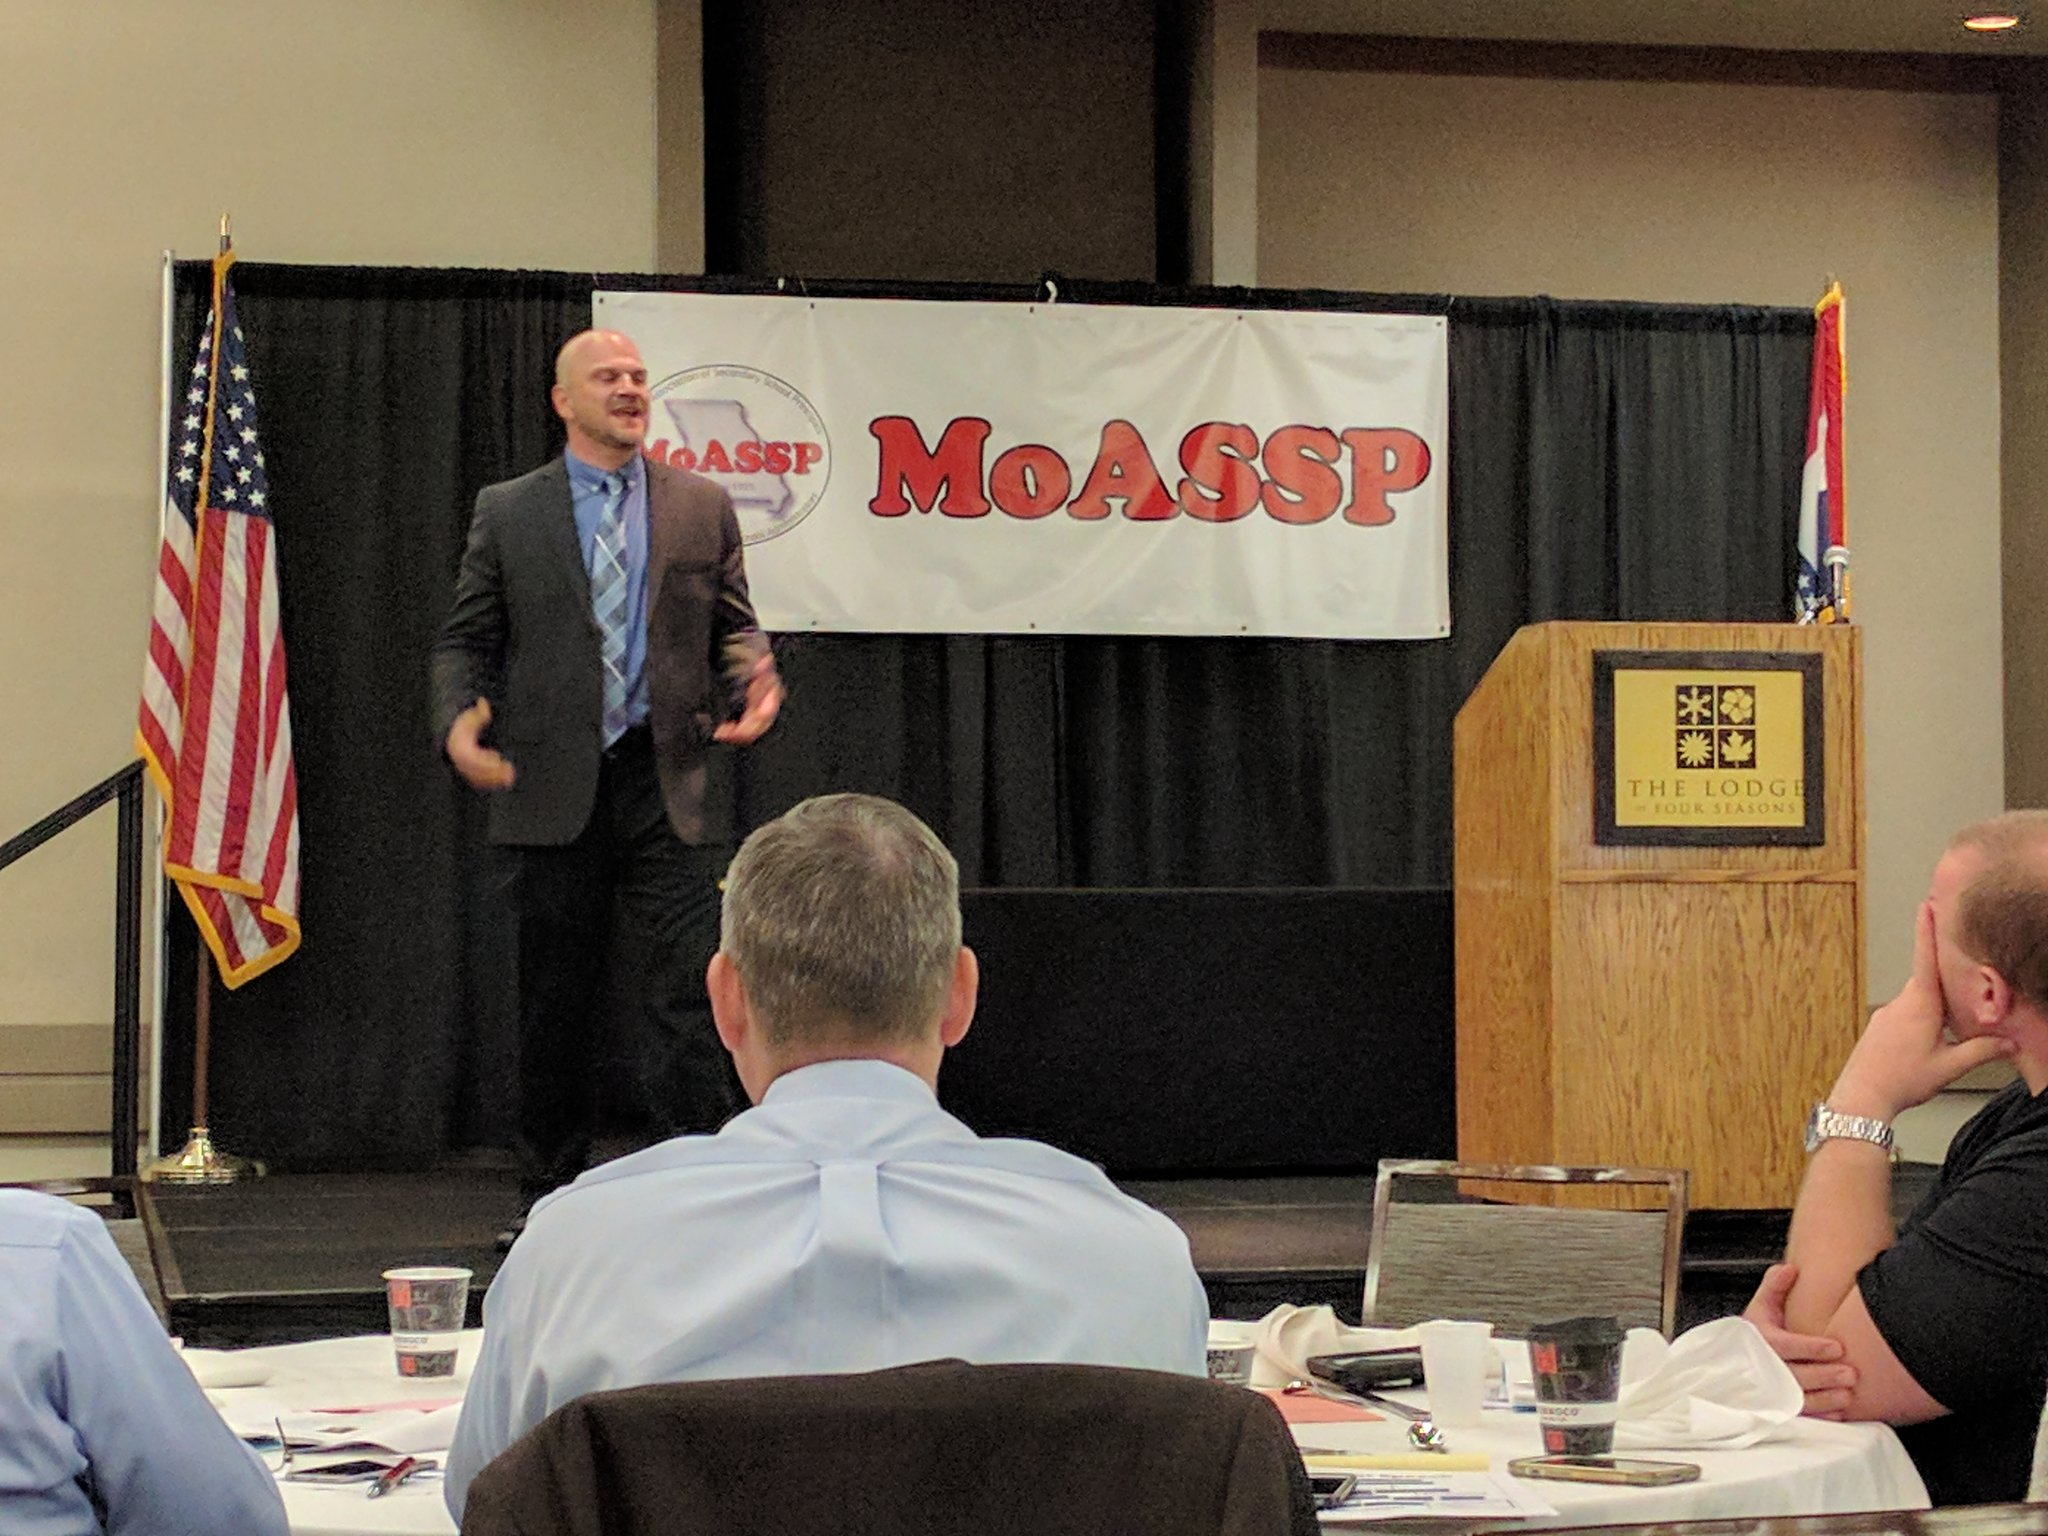 """Amazing has to become your normal"" ~ Les Norman on #ServantLeadership #MoSC17 @MOASSP https://t.co/qh40wkMKhV"